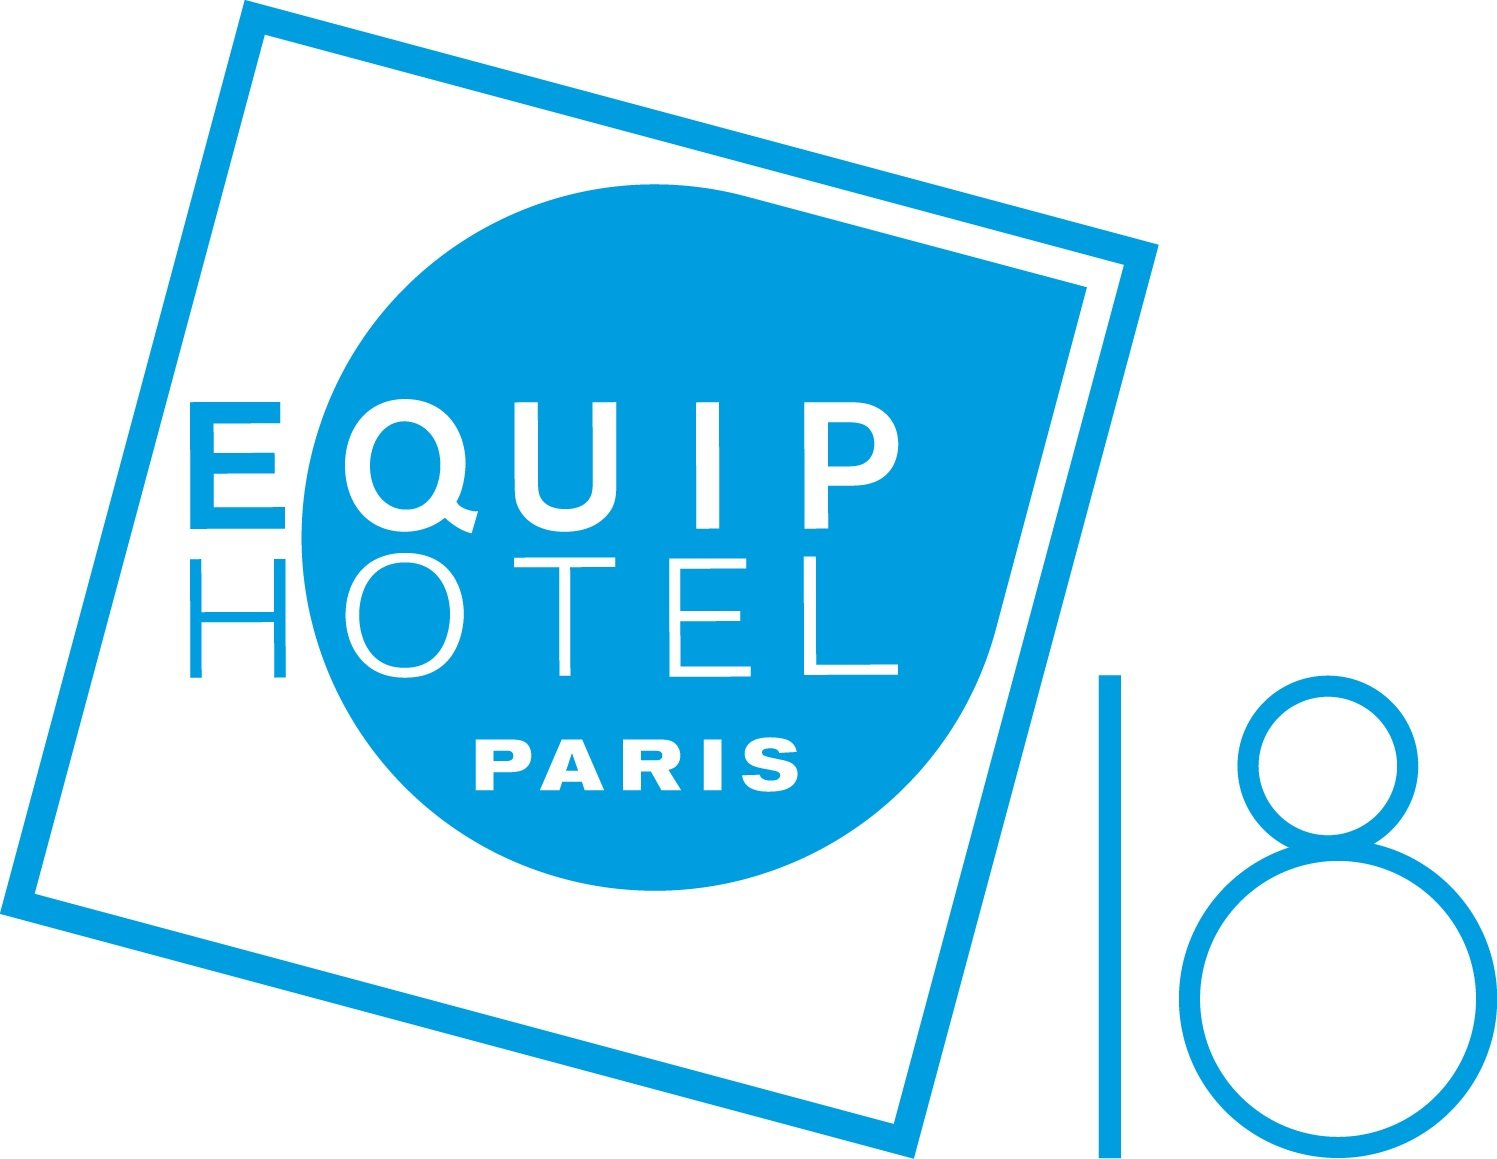 design Next design event in Paris – EquipHotel logo equiphotel 1